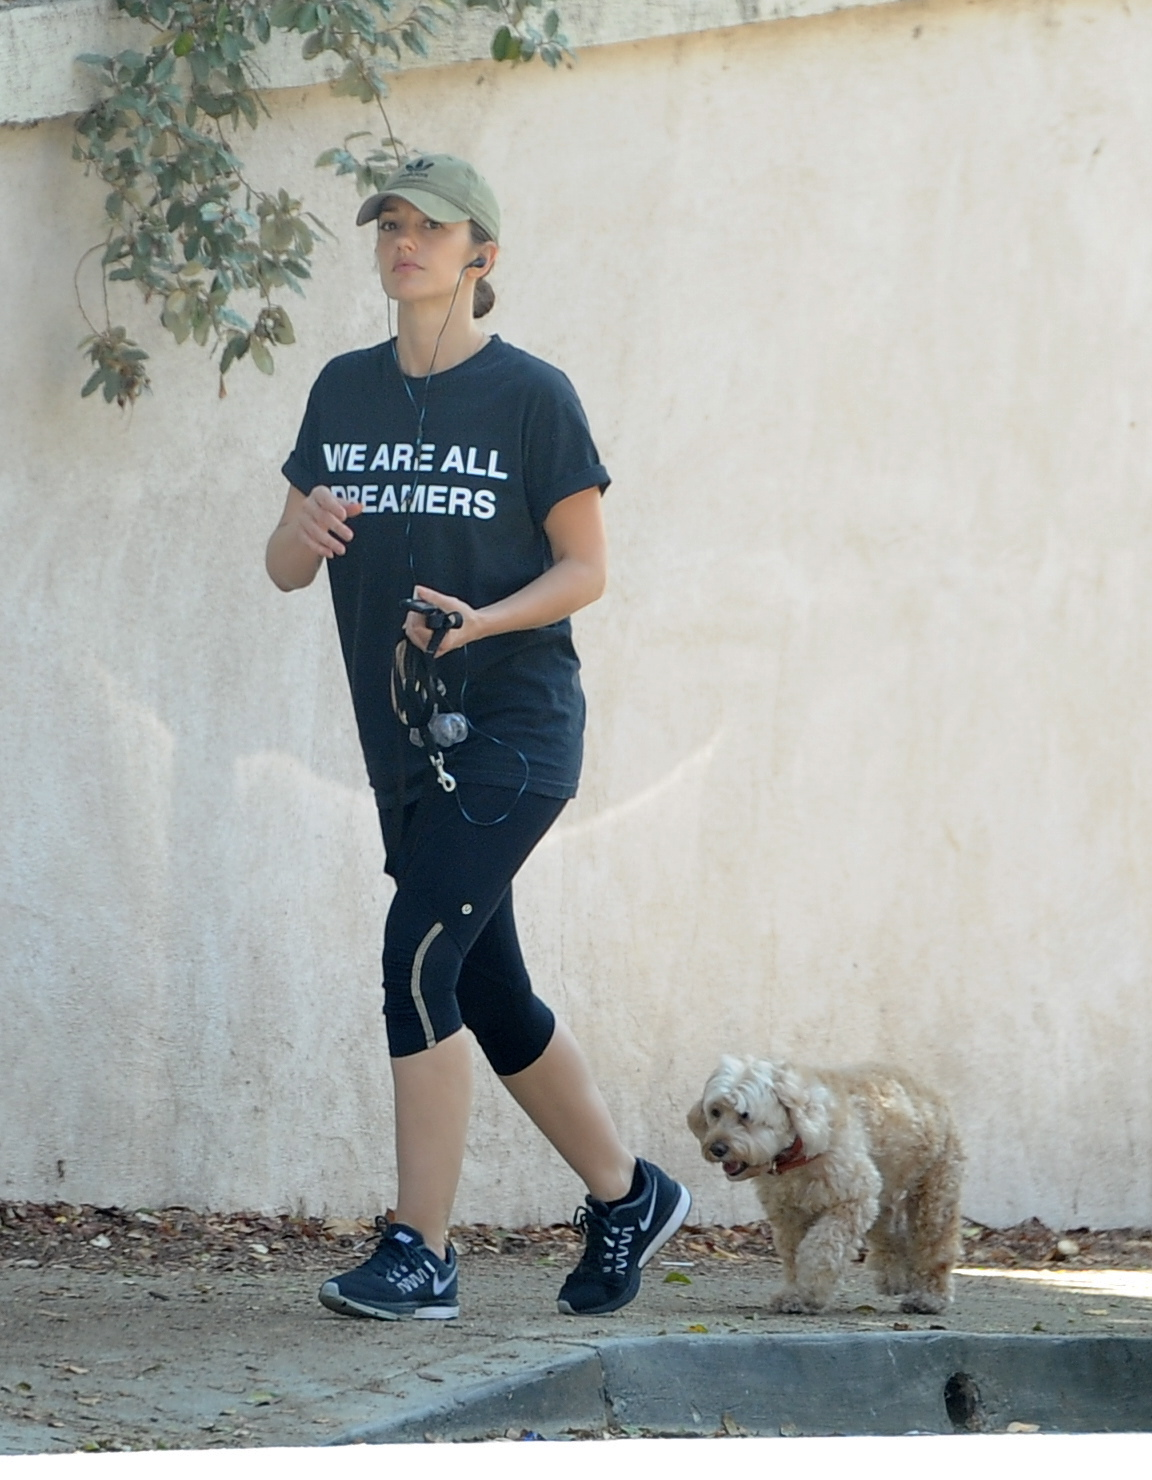 Minka Kelly takes her dogs Chewy and Fred to the dog park while wearing a WE ARE ALL DREAMERS tshirt                                    Featuring: Minka Kelly, Chewy                  Where: Hollywood, California, United States                  When: 09 Sep 2017                  Credit: WENN